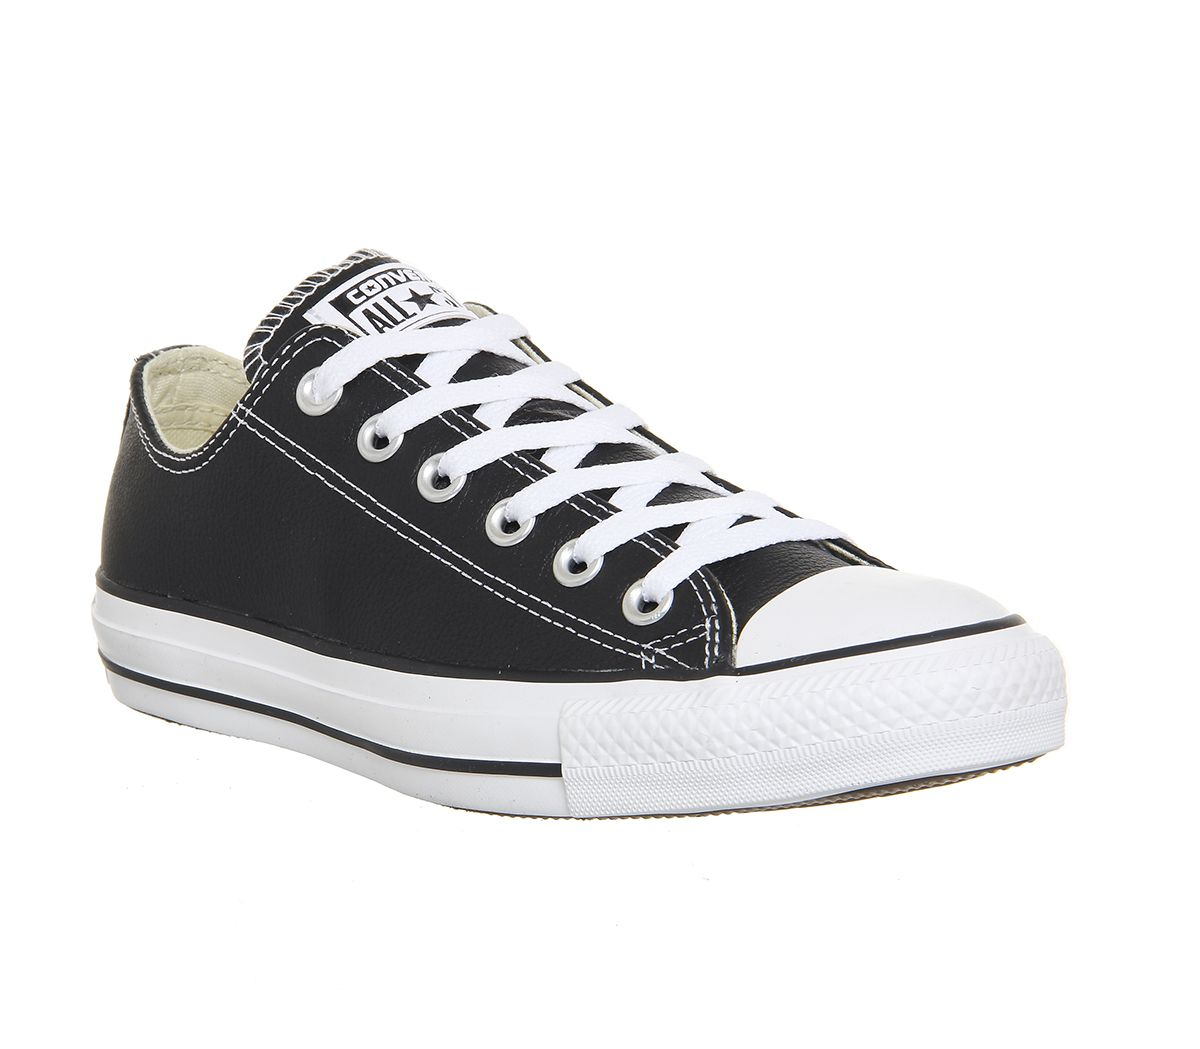 516b6af3ee4d Converse All Star Low Leather Black White Leather - Unisex Sports